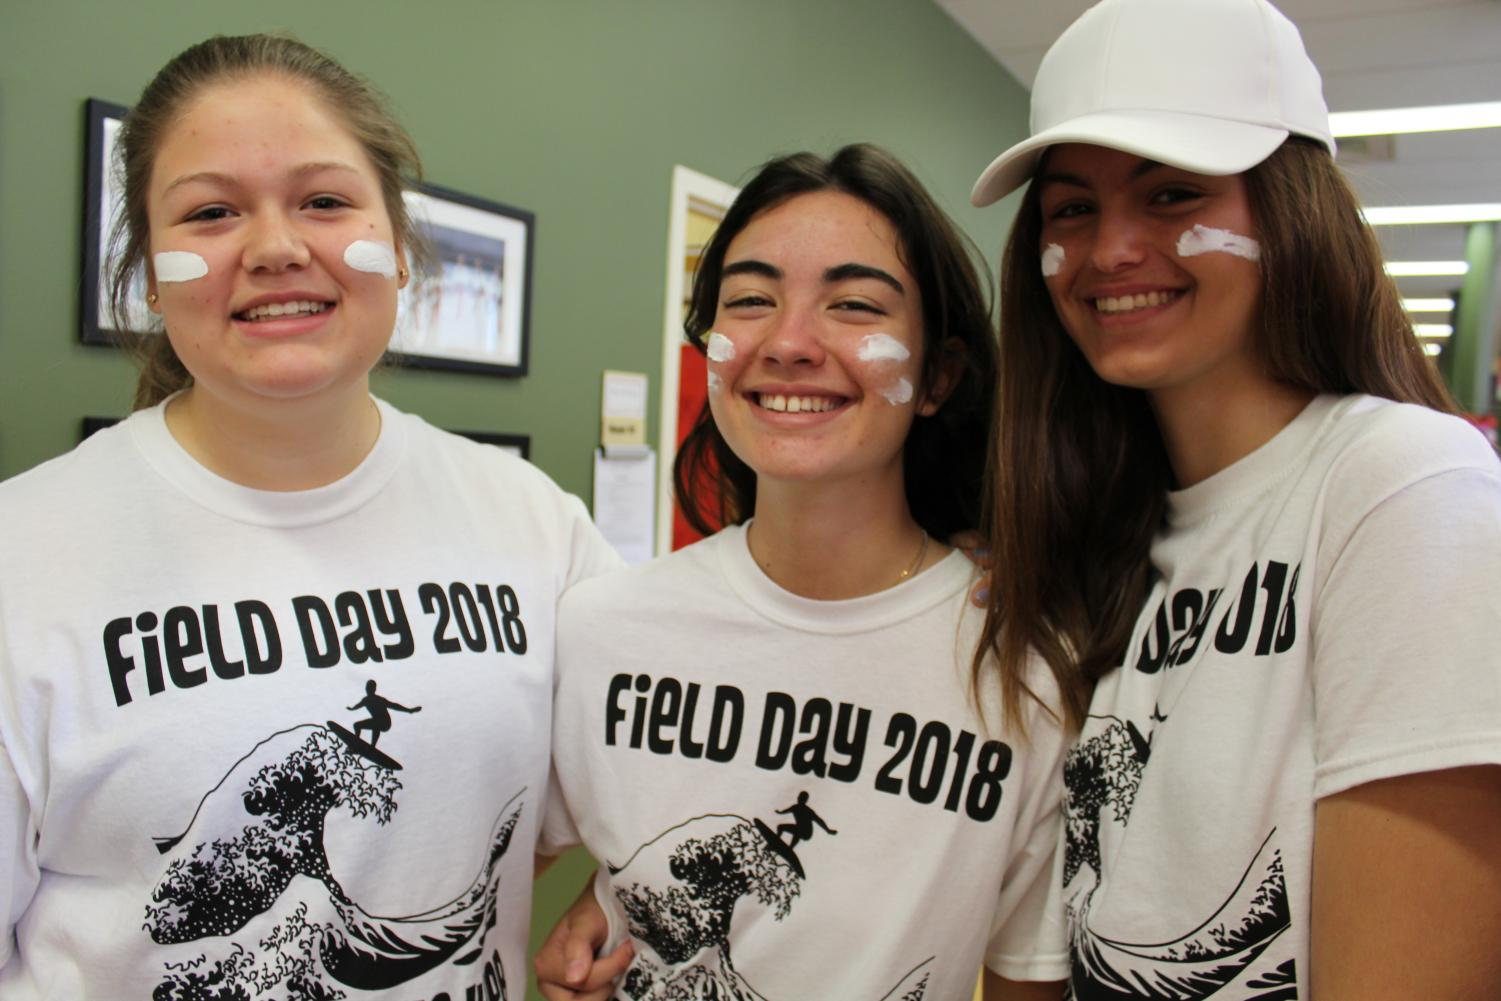 Ally '21 smiles with exchange students Lucia '21 and Elena '21 on field day.